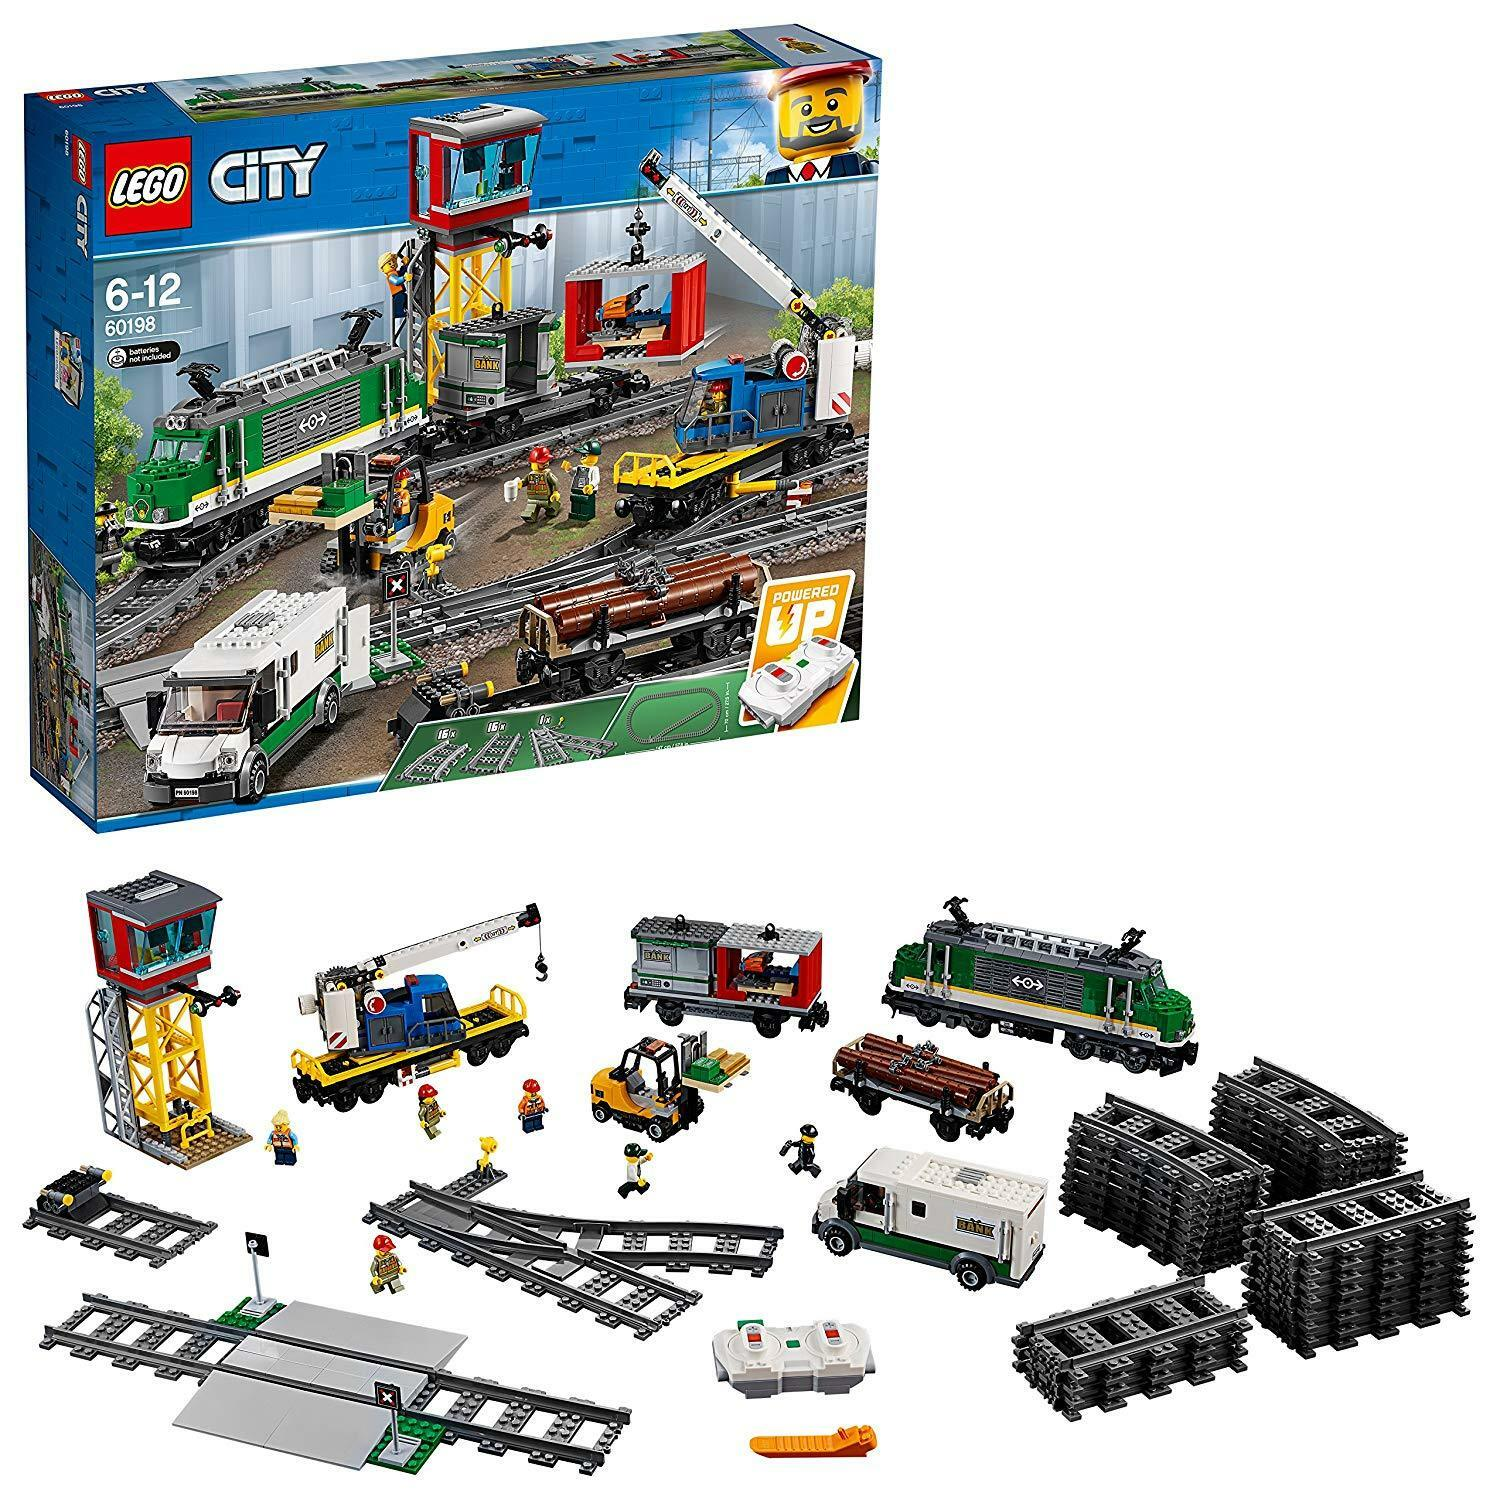 Lego City 60198 - Treno delle merci - New and sealed